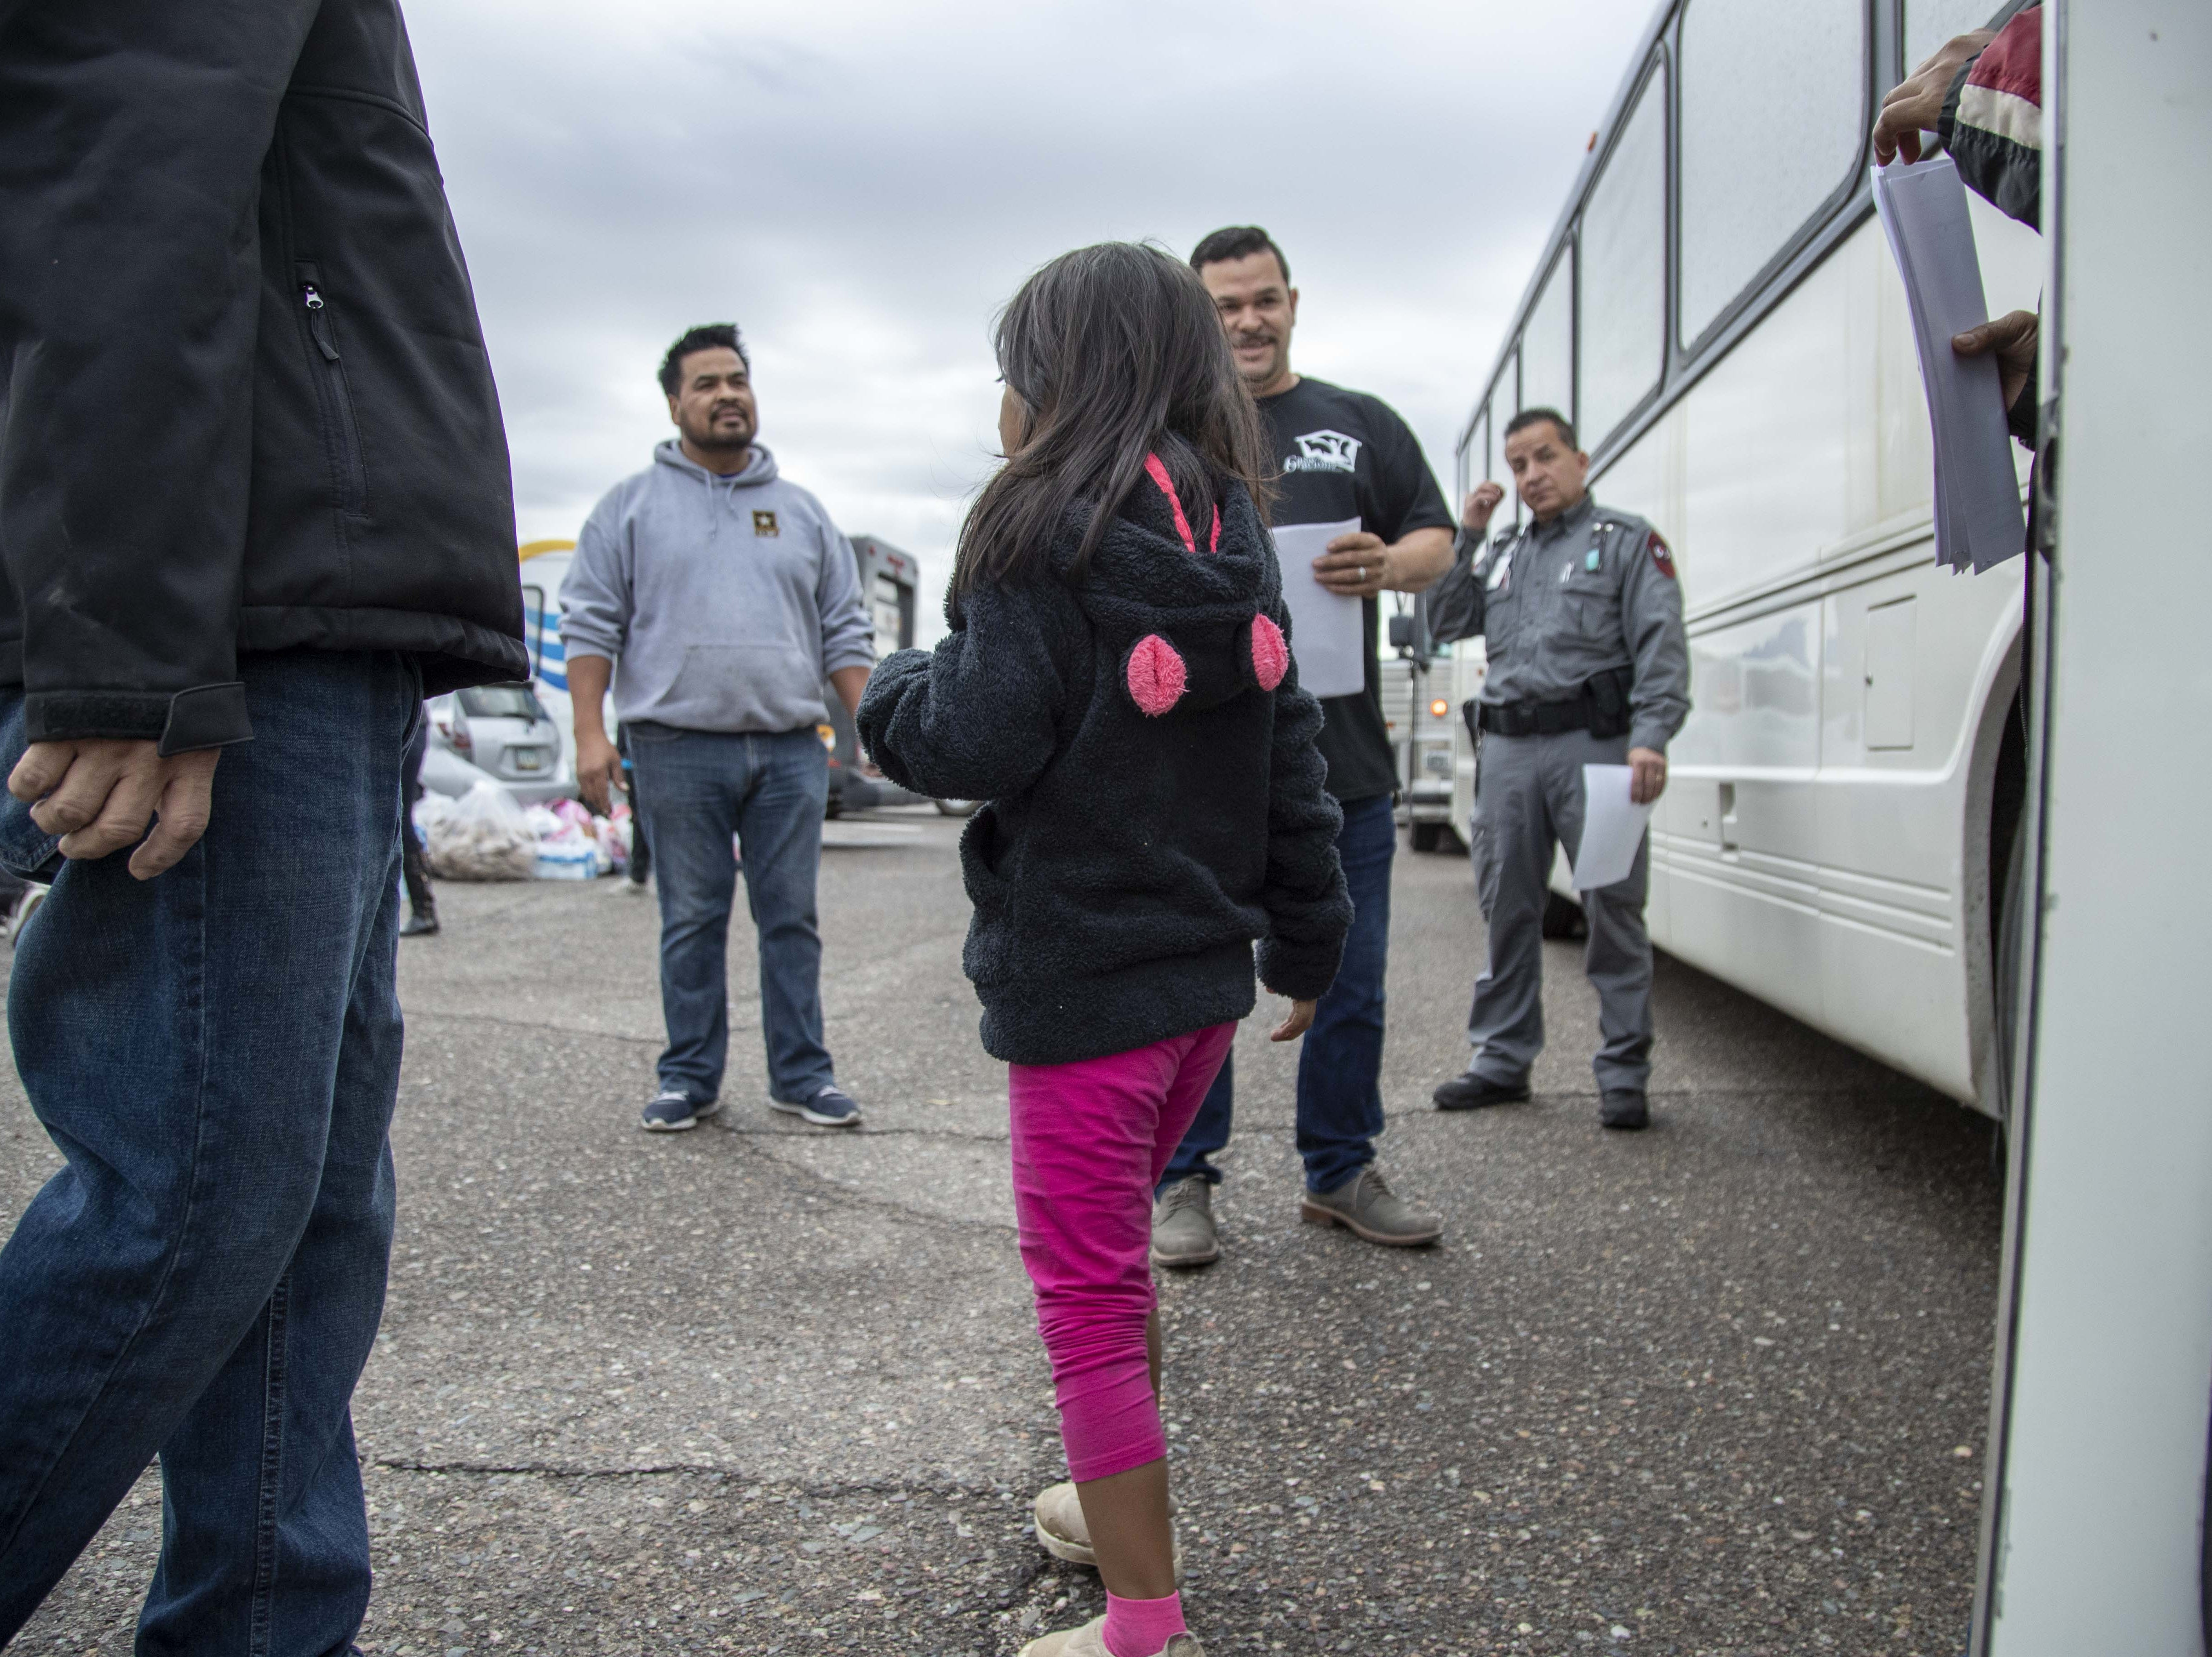 Federal immigration authorities have been releasing large groups of migrant families from Central America at local churches because they don't have the capacity to hold them. But two months after ICE began releasing the families, and with no end in sight, the churches are becoming overwhelmed. On Nov. 30, 2018, ICE released 60 families, totaling about 130 men, women and children, at Casa de Oracion Number 2, a Hispanic church in north Phoenix. The pastor greeted the families as they got off Department of Homeland Security buses, taking their first steps in the United States.